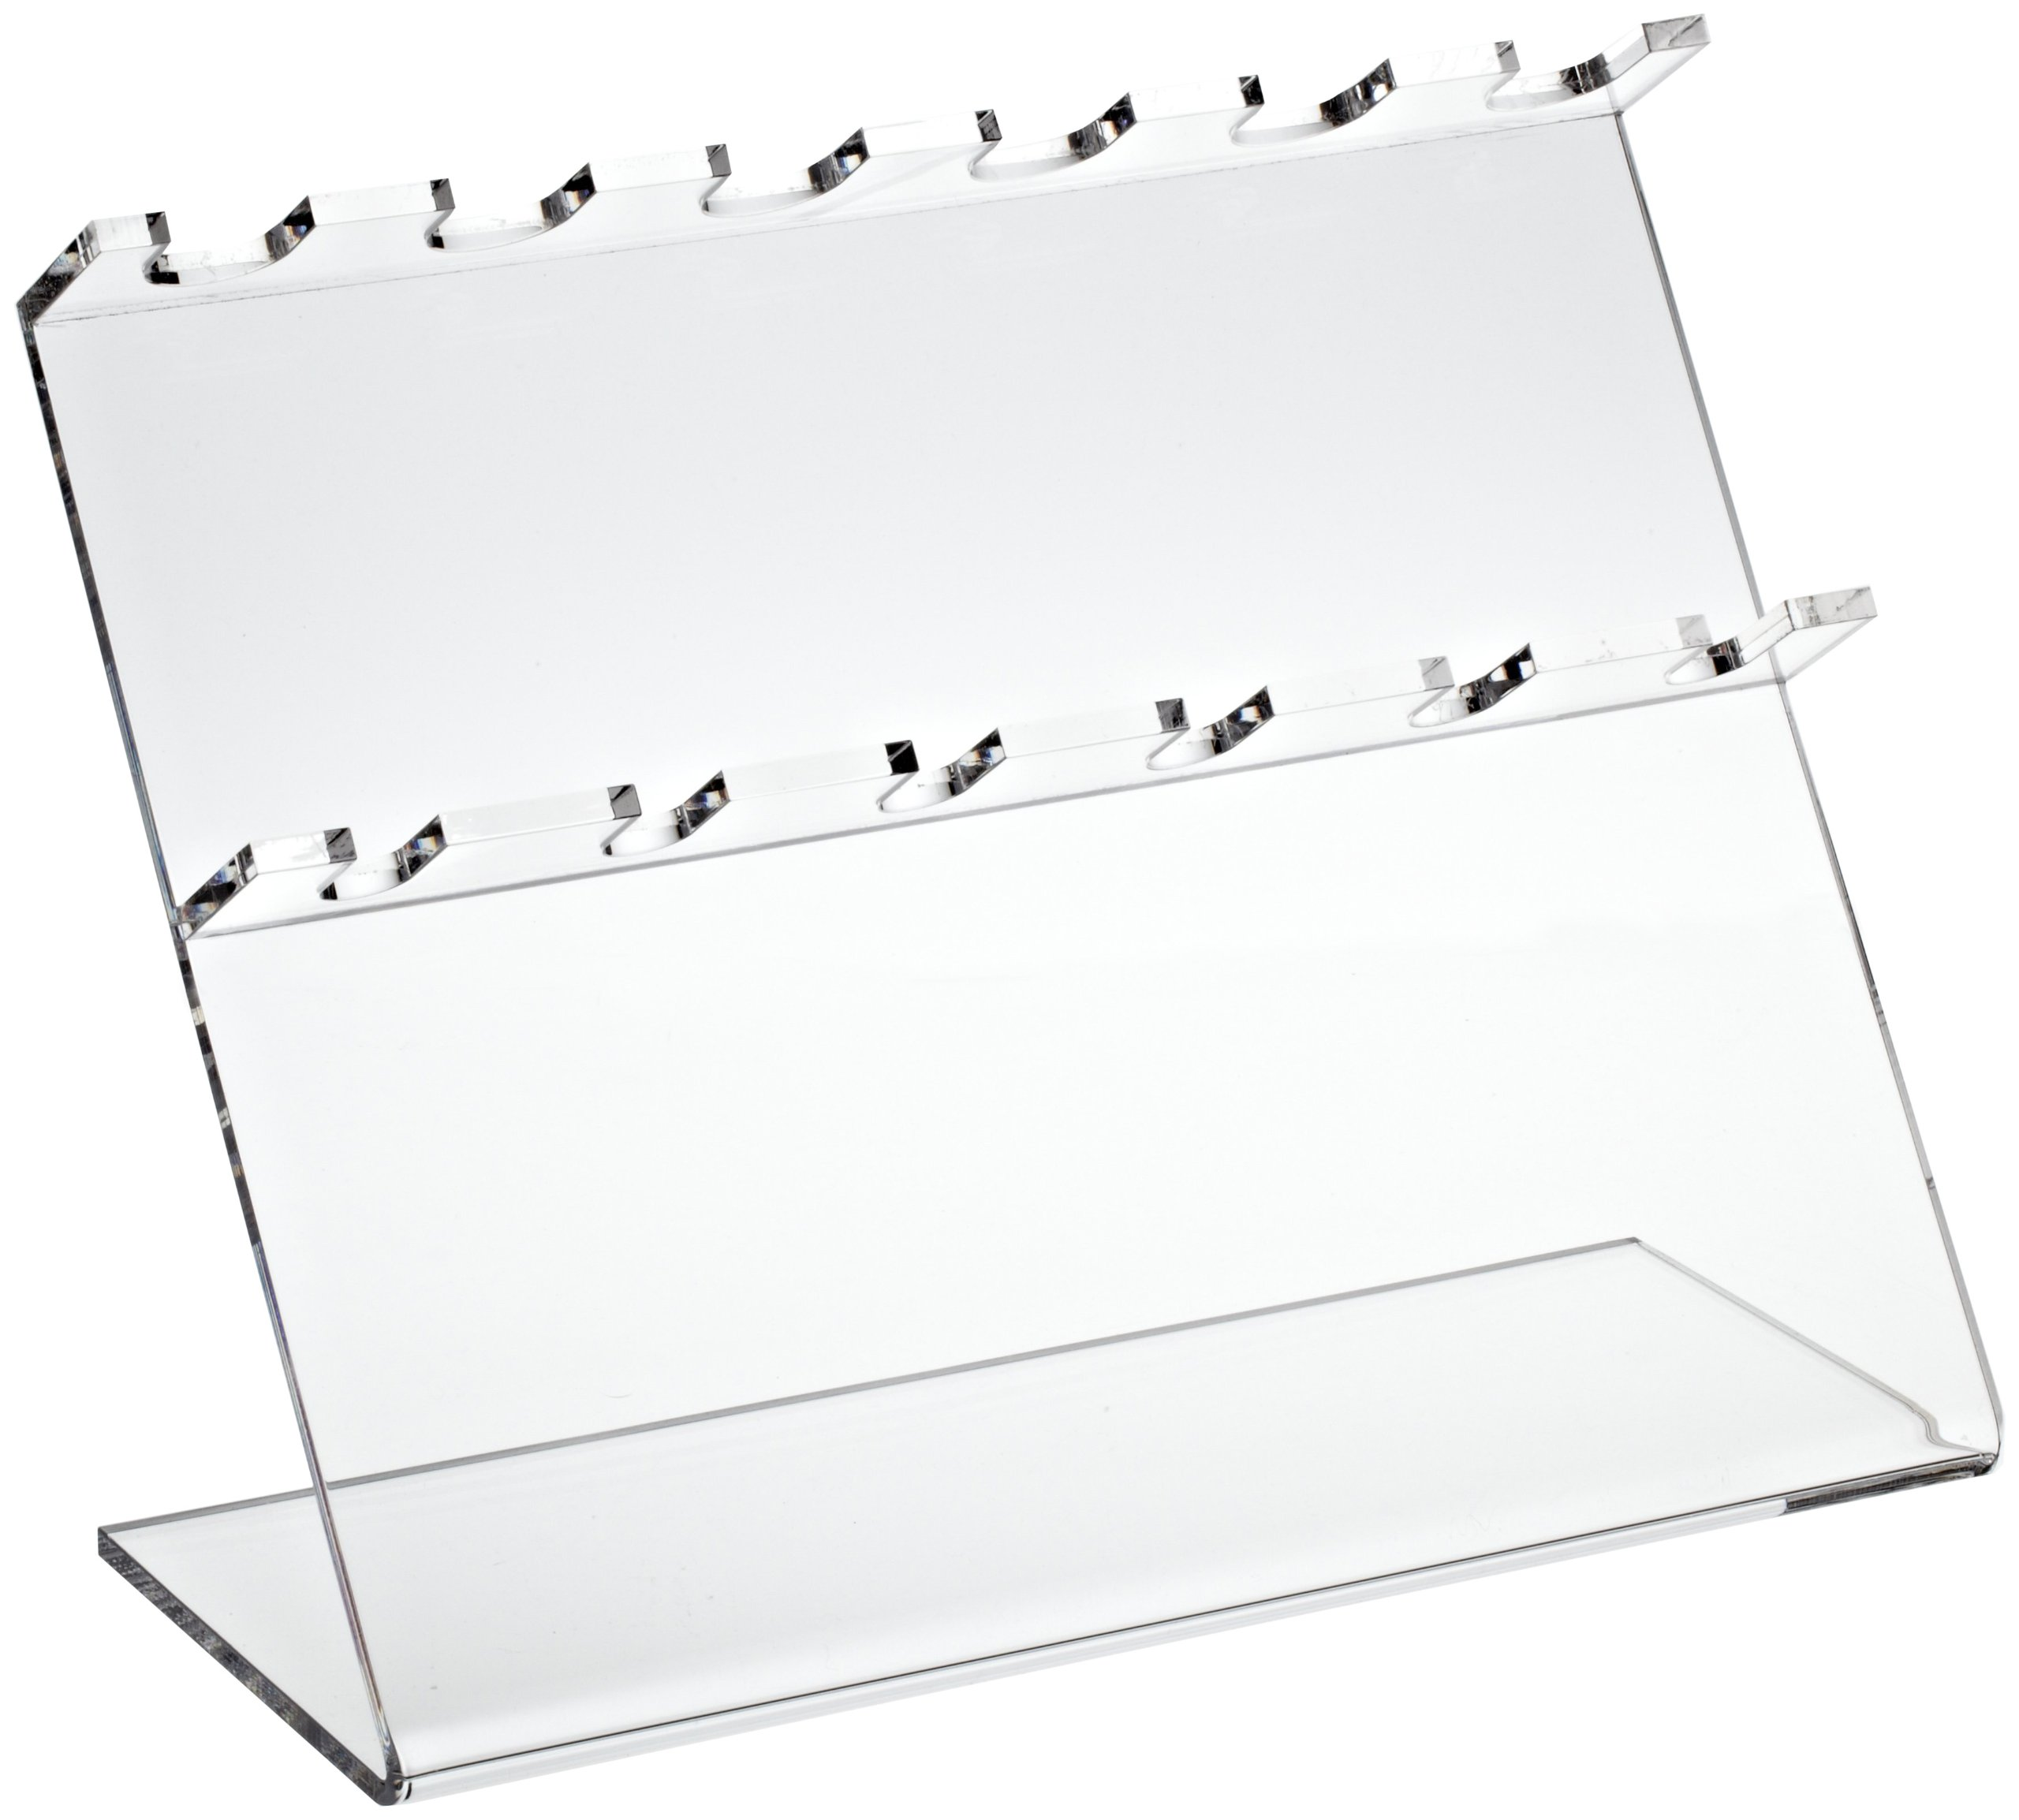 Bel-Art Pipettor Stand; 6 Places, 12 x 5 x 9½ in, Acrylic (F18961-0060)